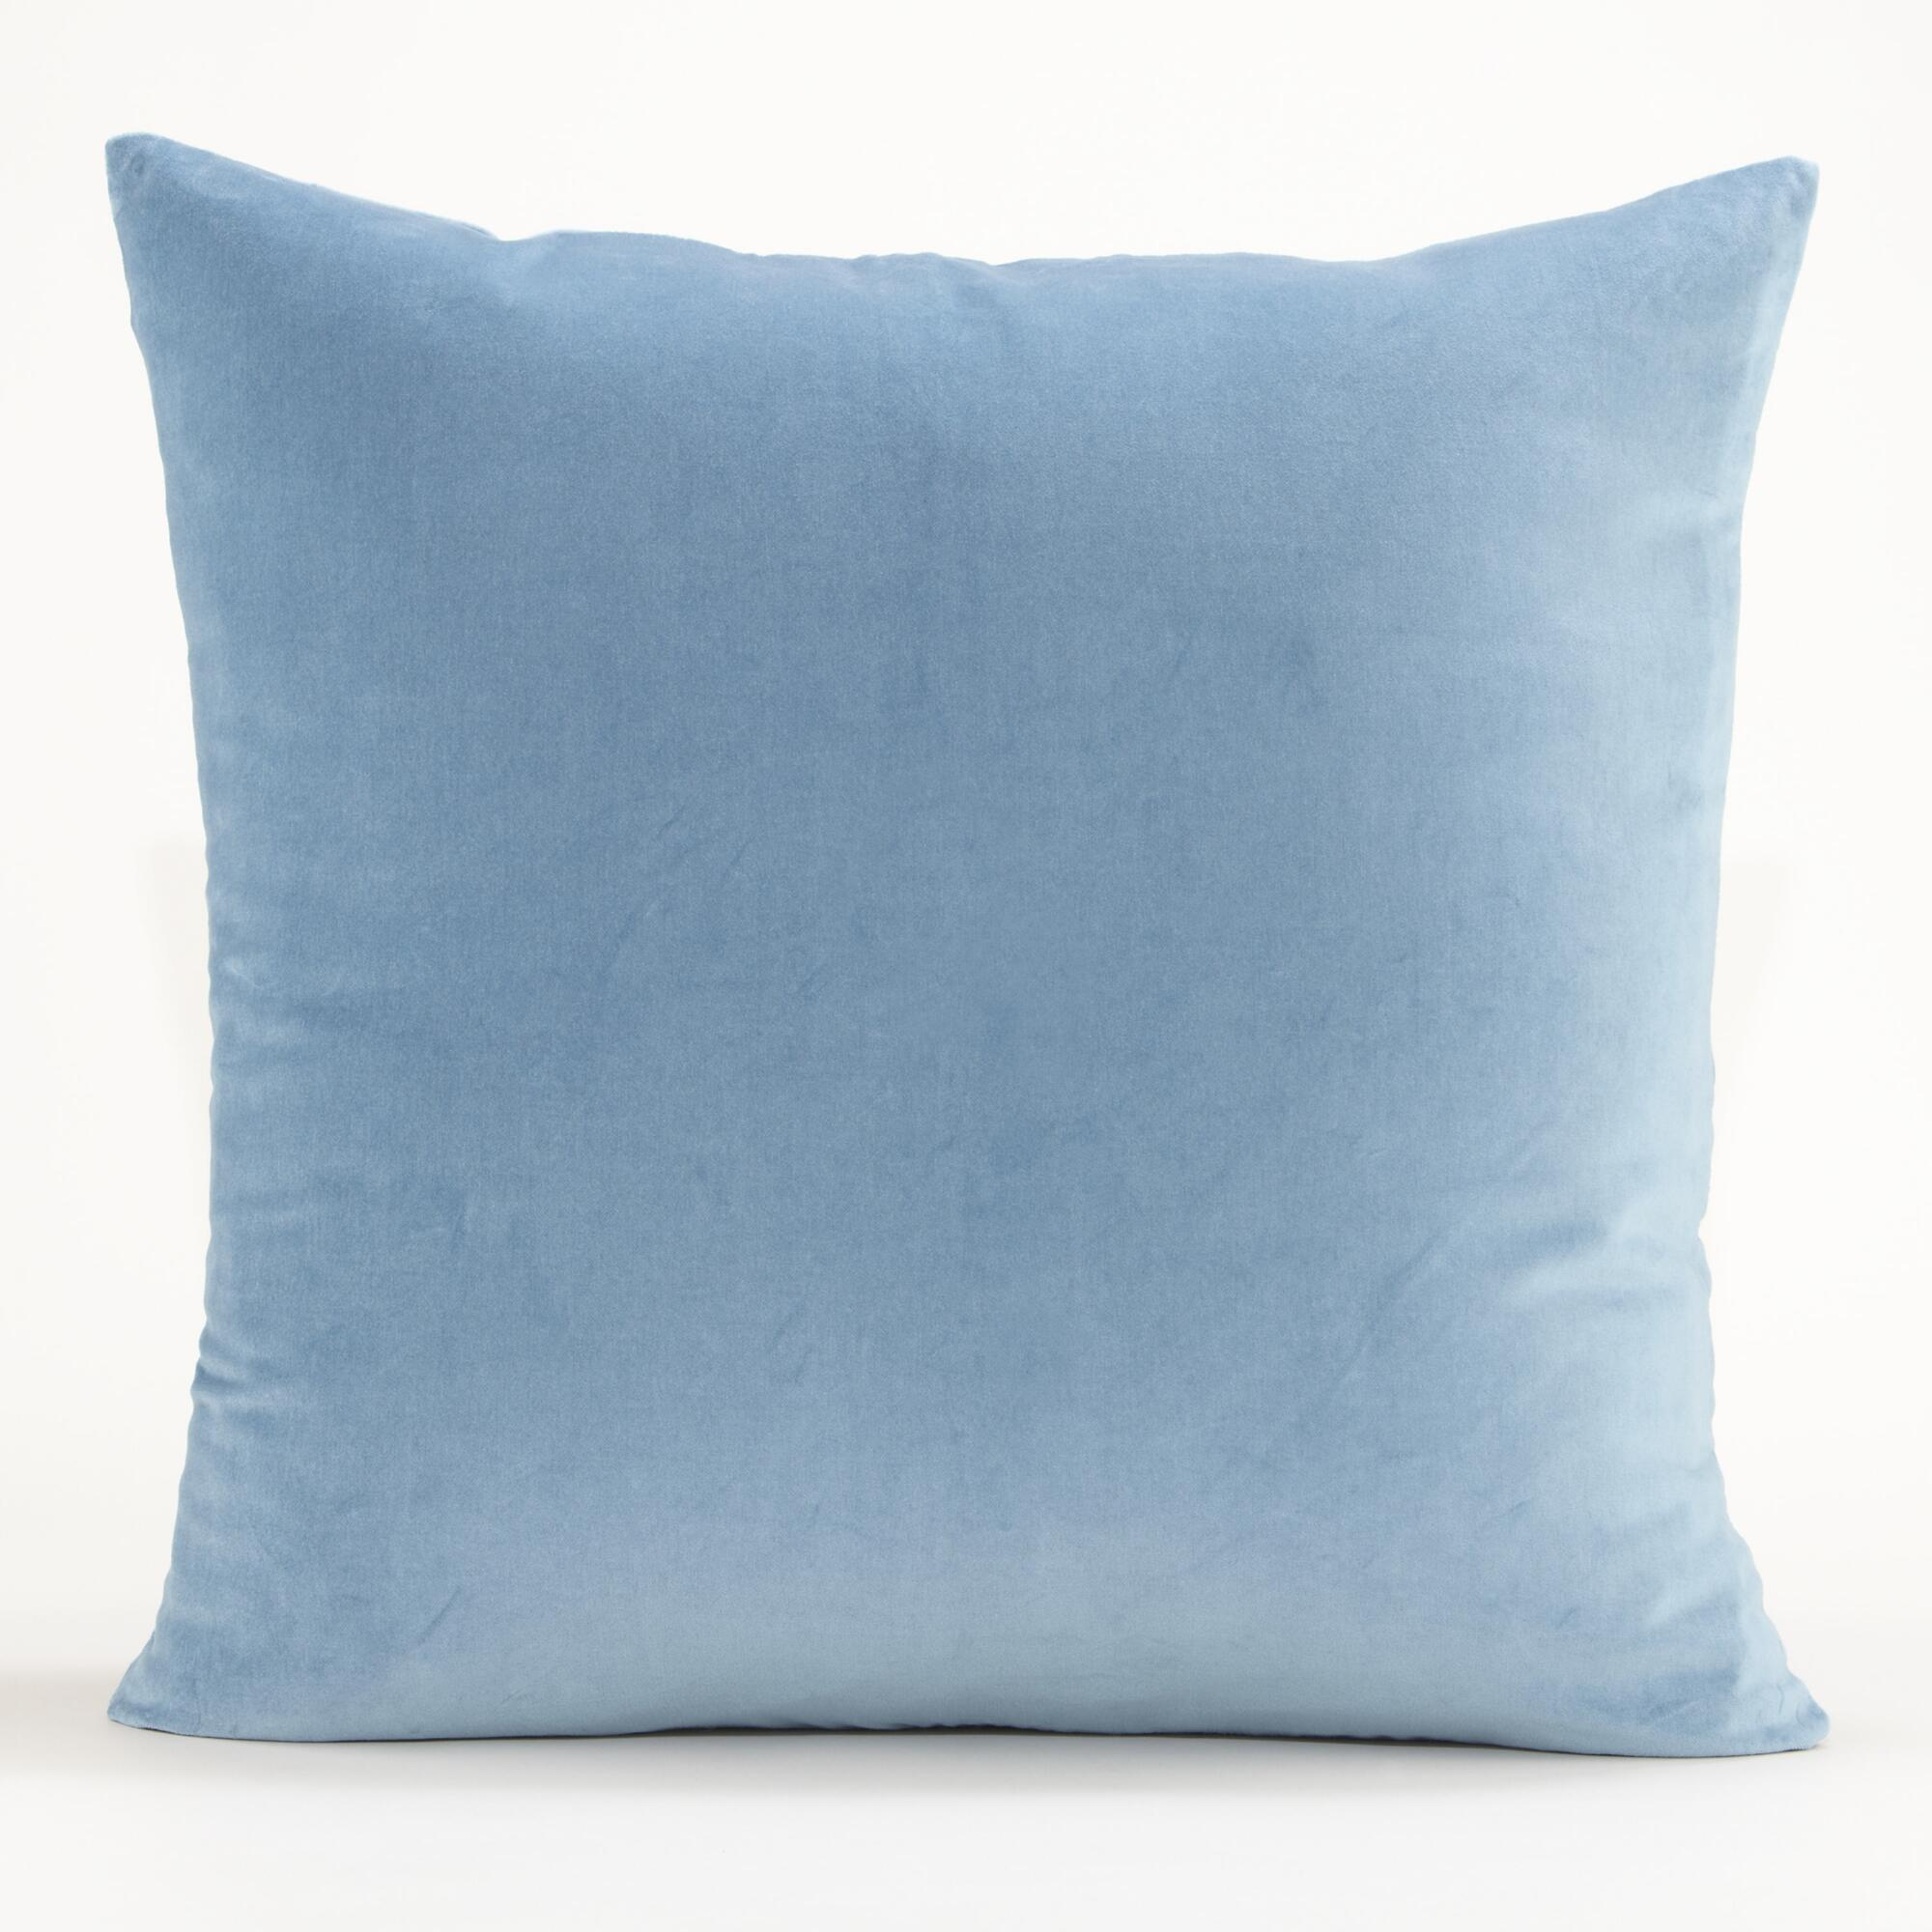 Blue Throw Pillows For Couch